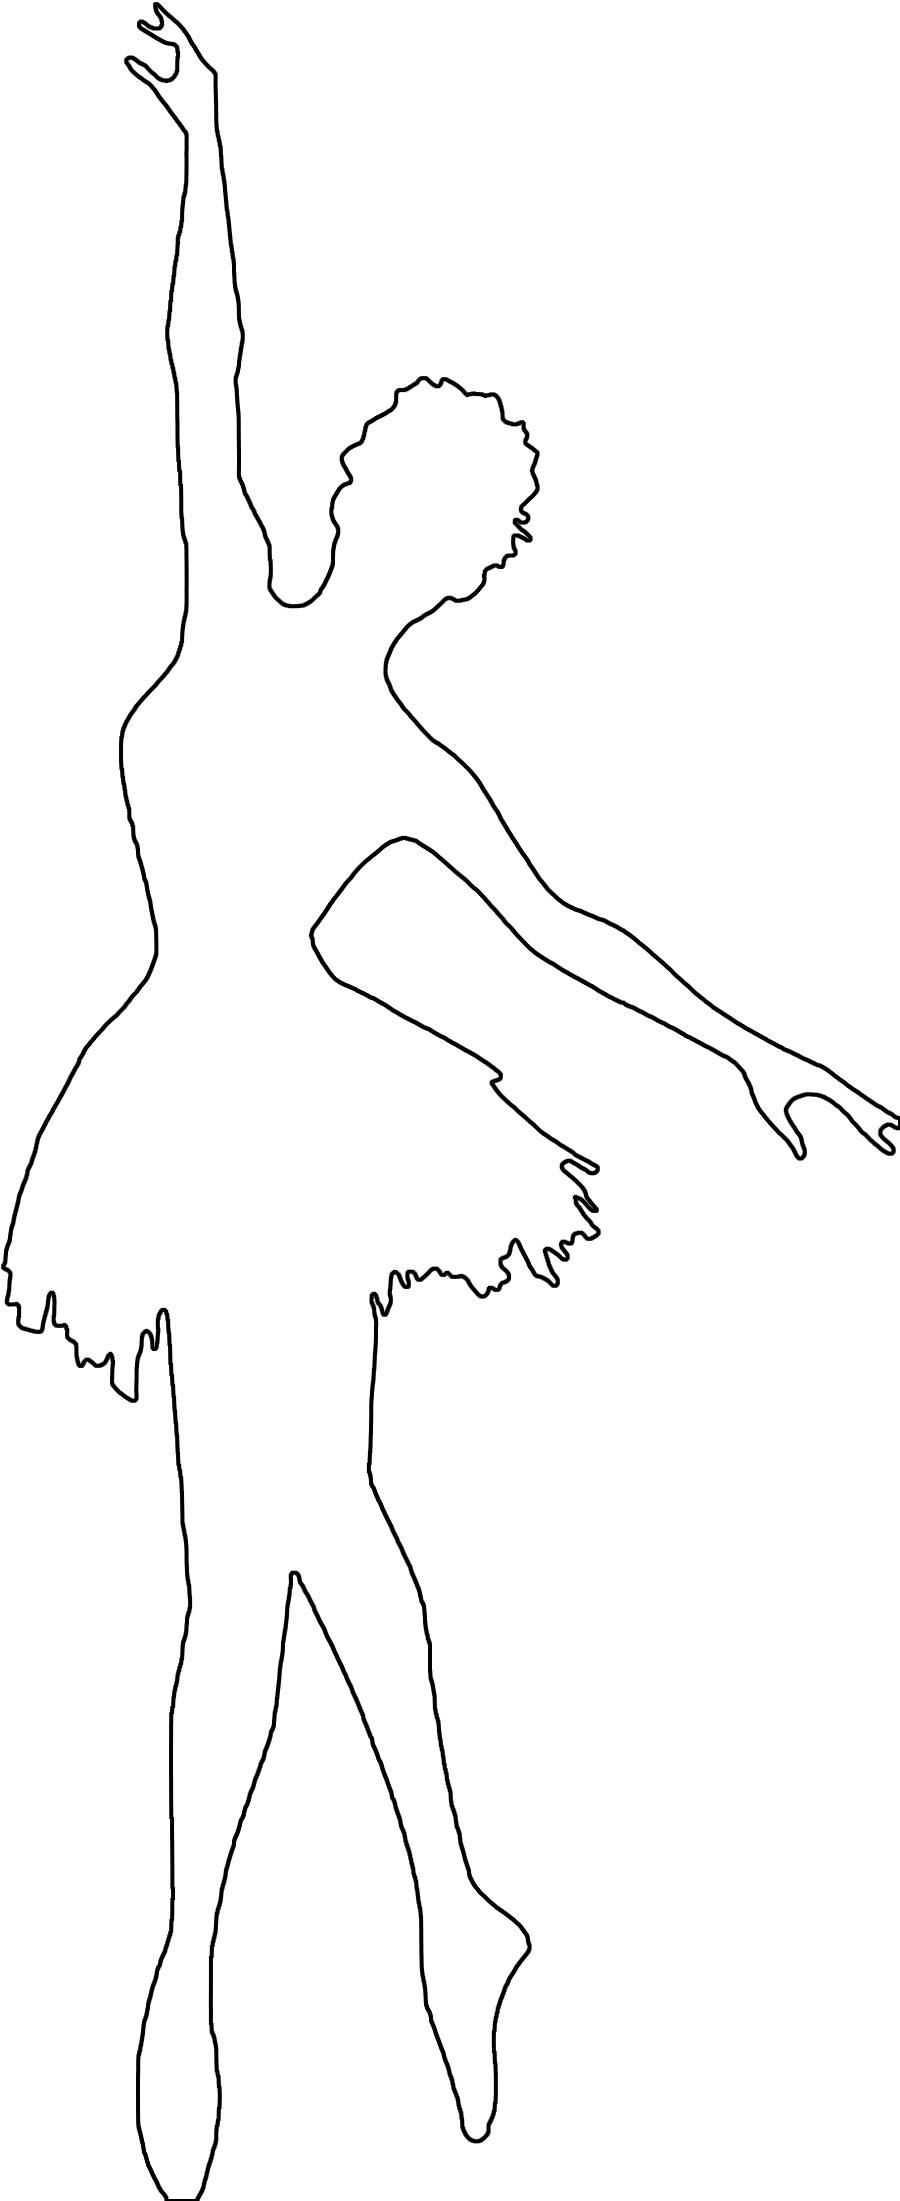 Image result for ballerina silhouette coloring pages | Paper Crafts ...